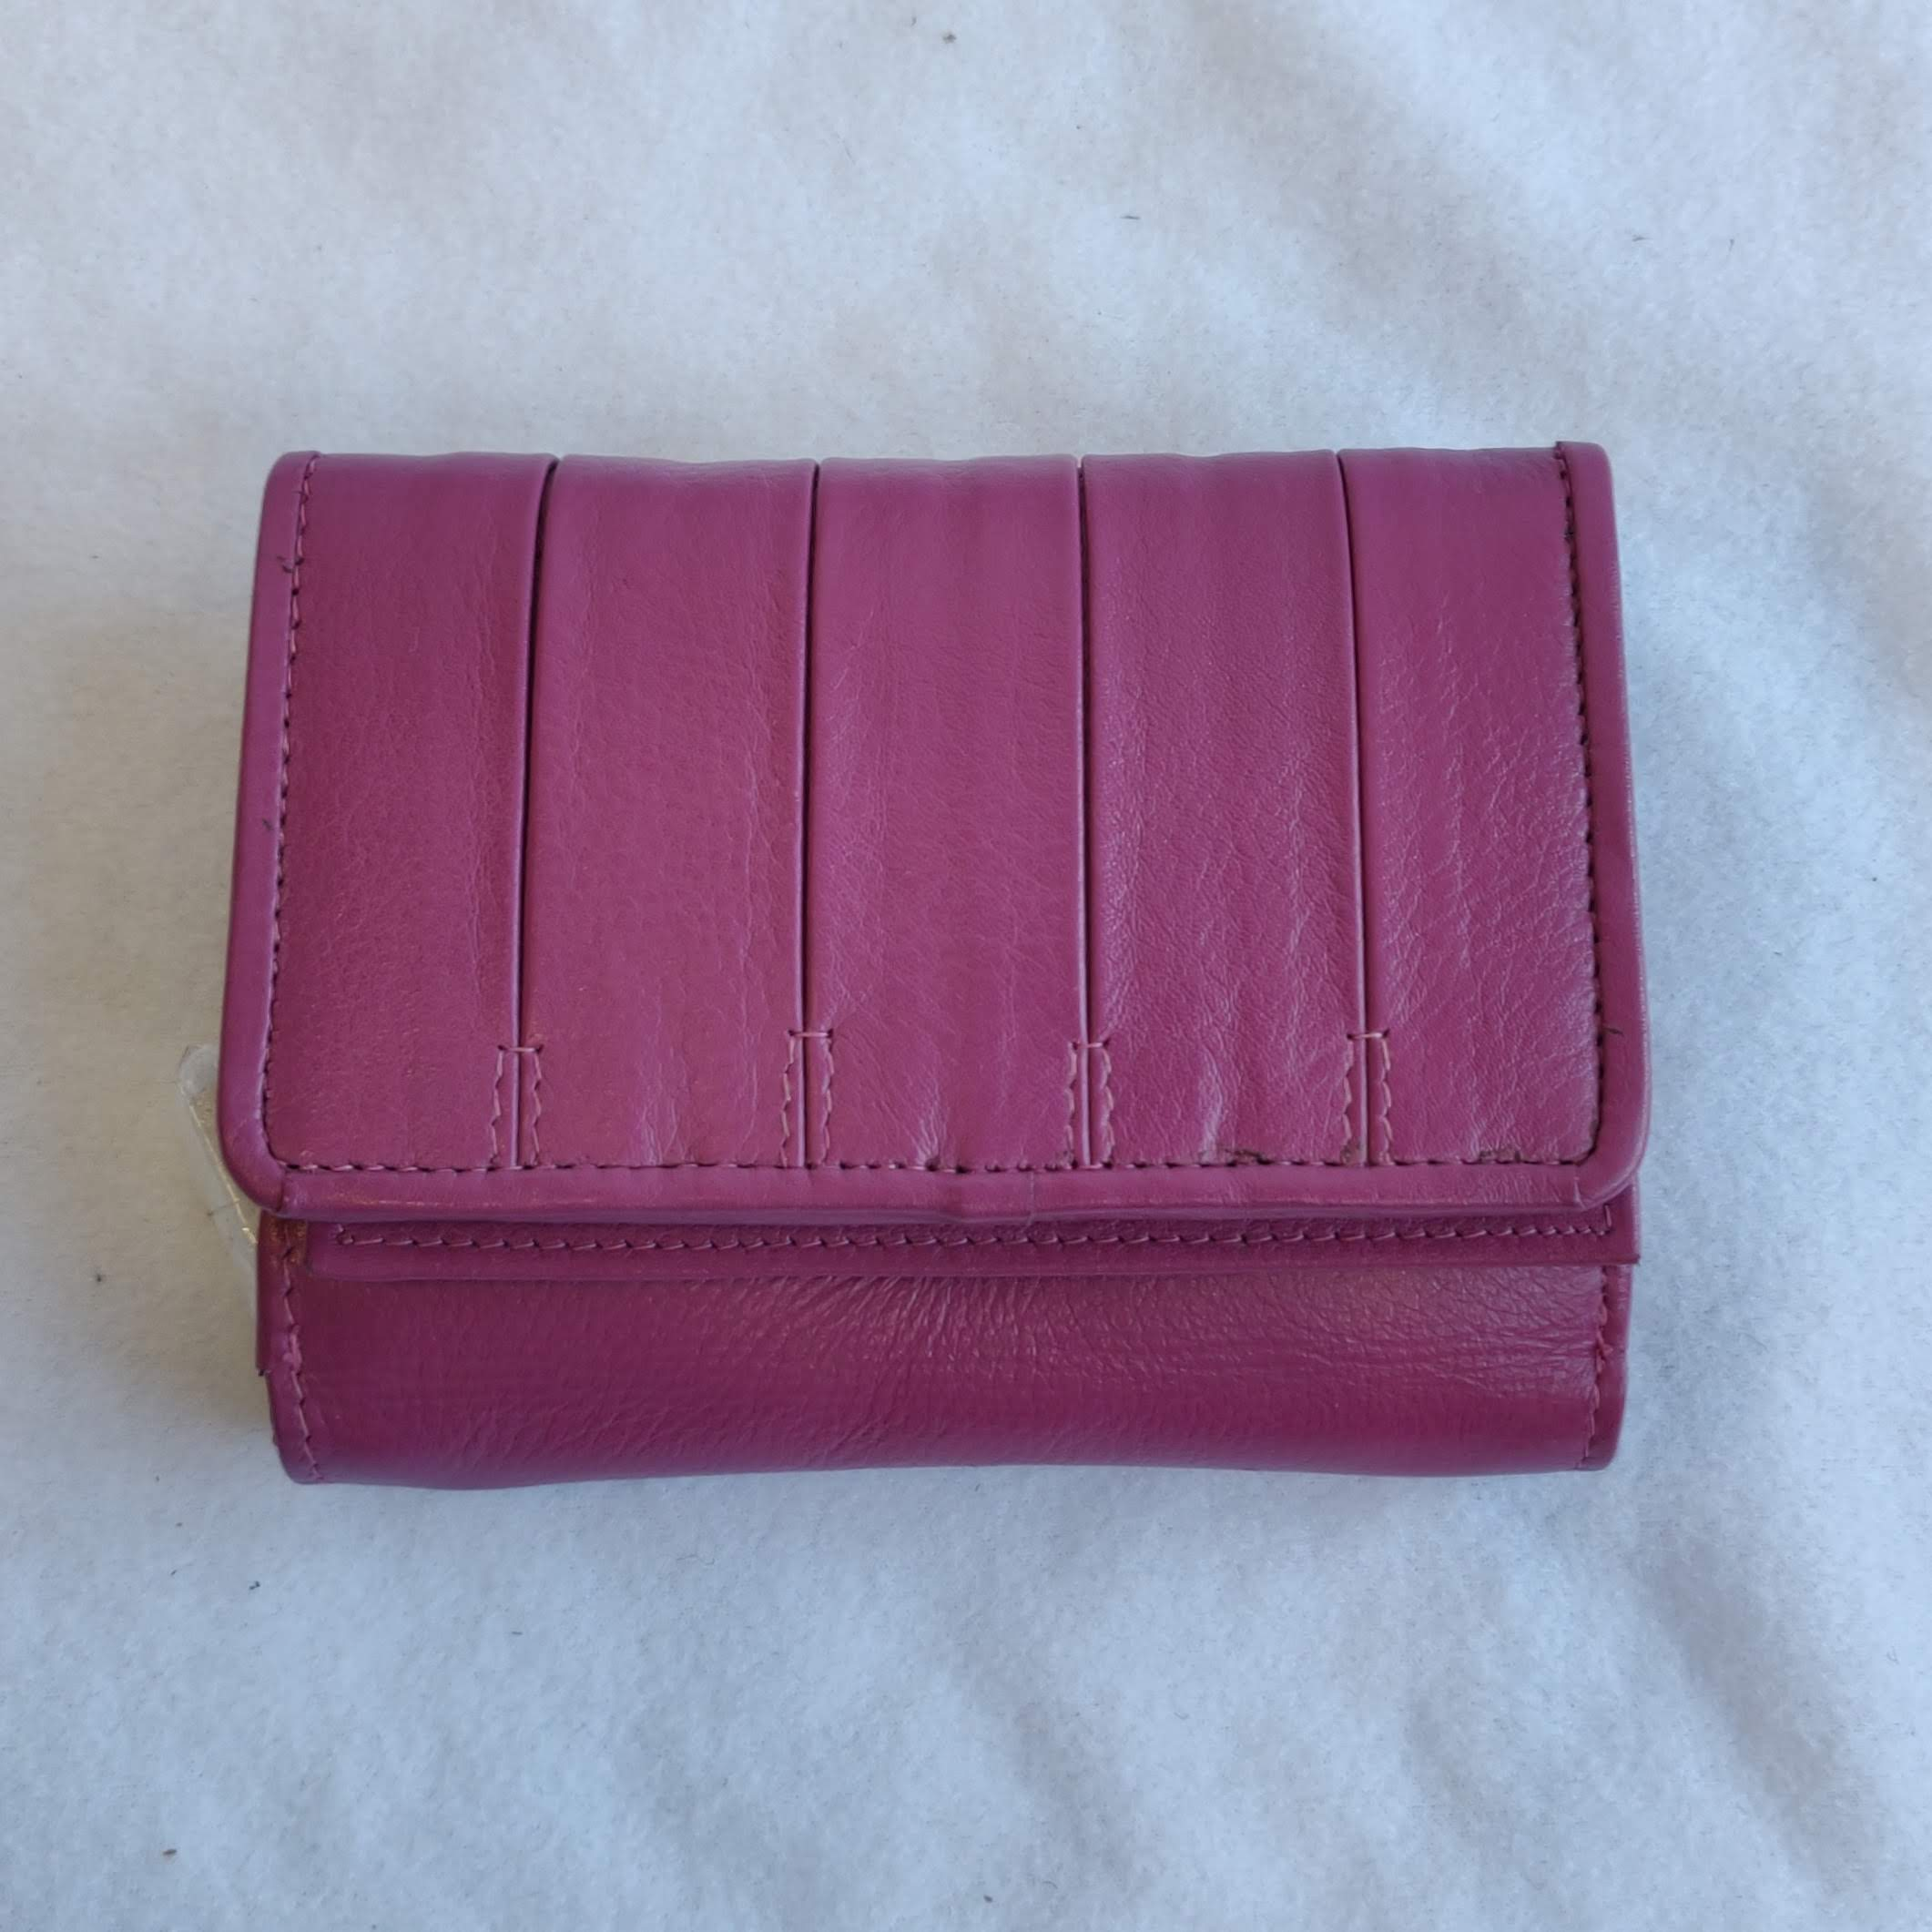 Ladies Leather Purse Pink/Fushia 603269